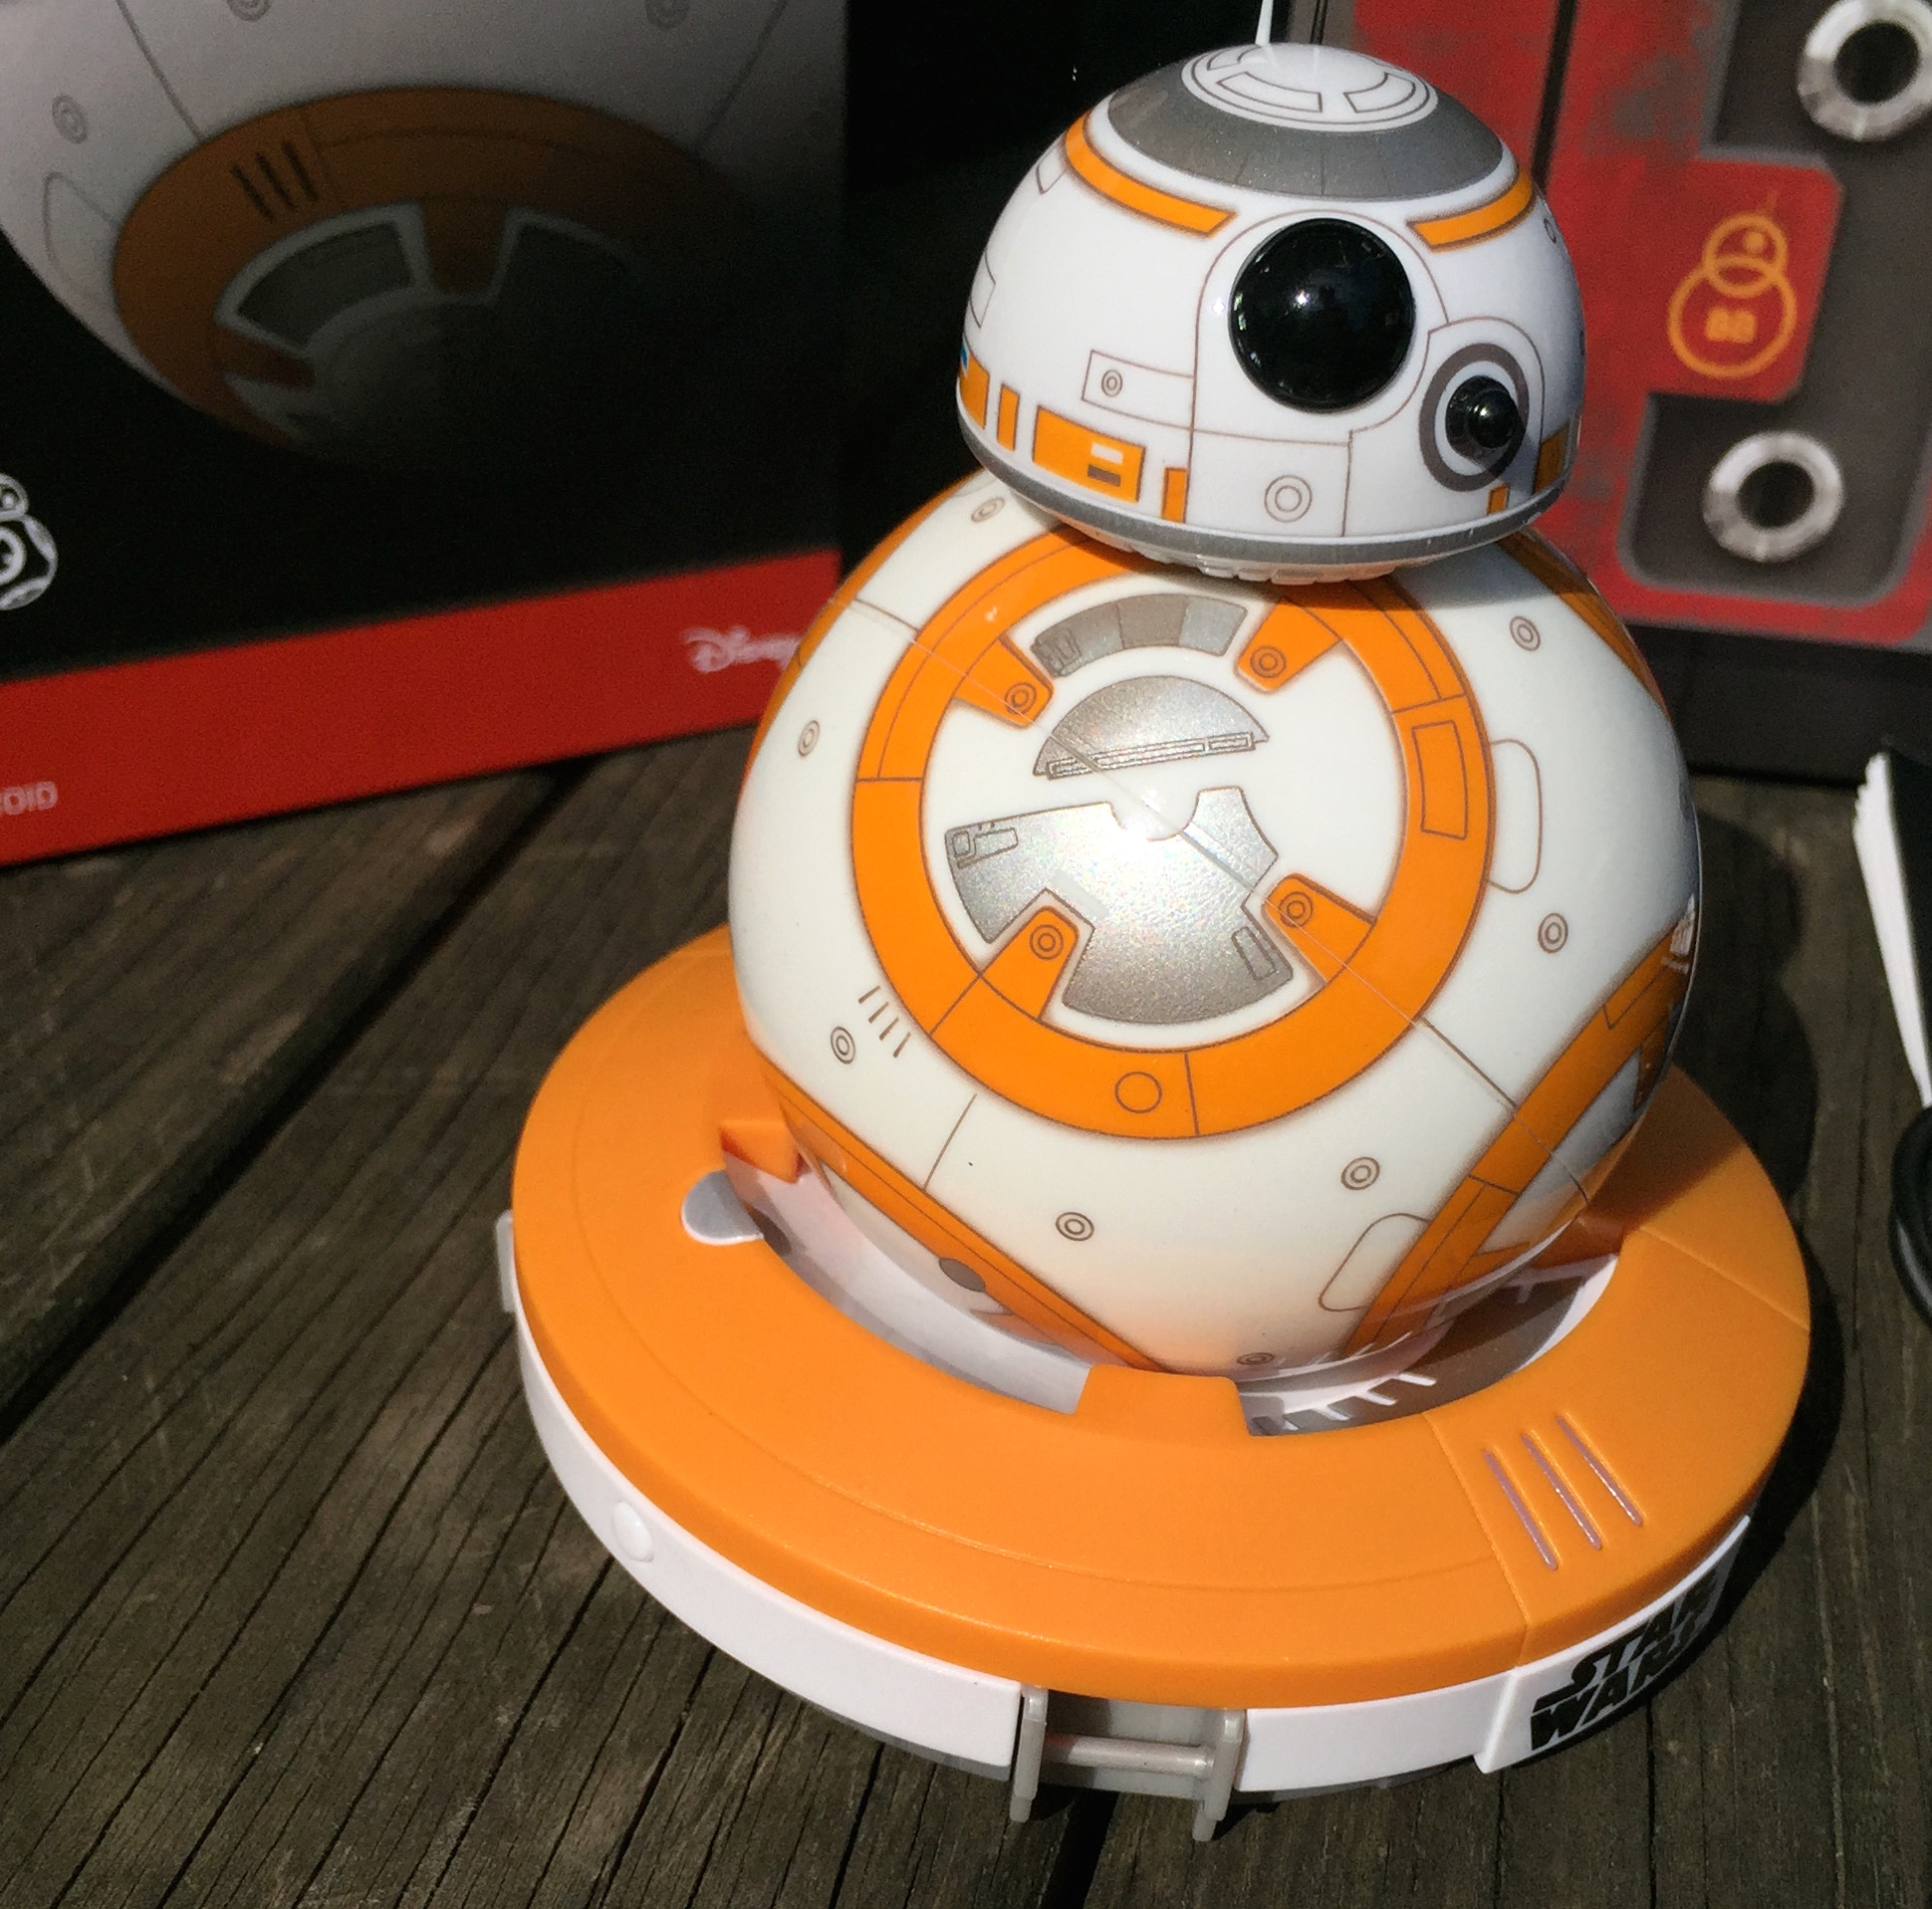 test de bb 8 le robot connect de star wars pour iphone ipad et android mise jour. Black Bedroom Furniture Sets. Home Design Ideas